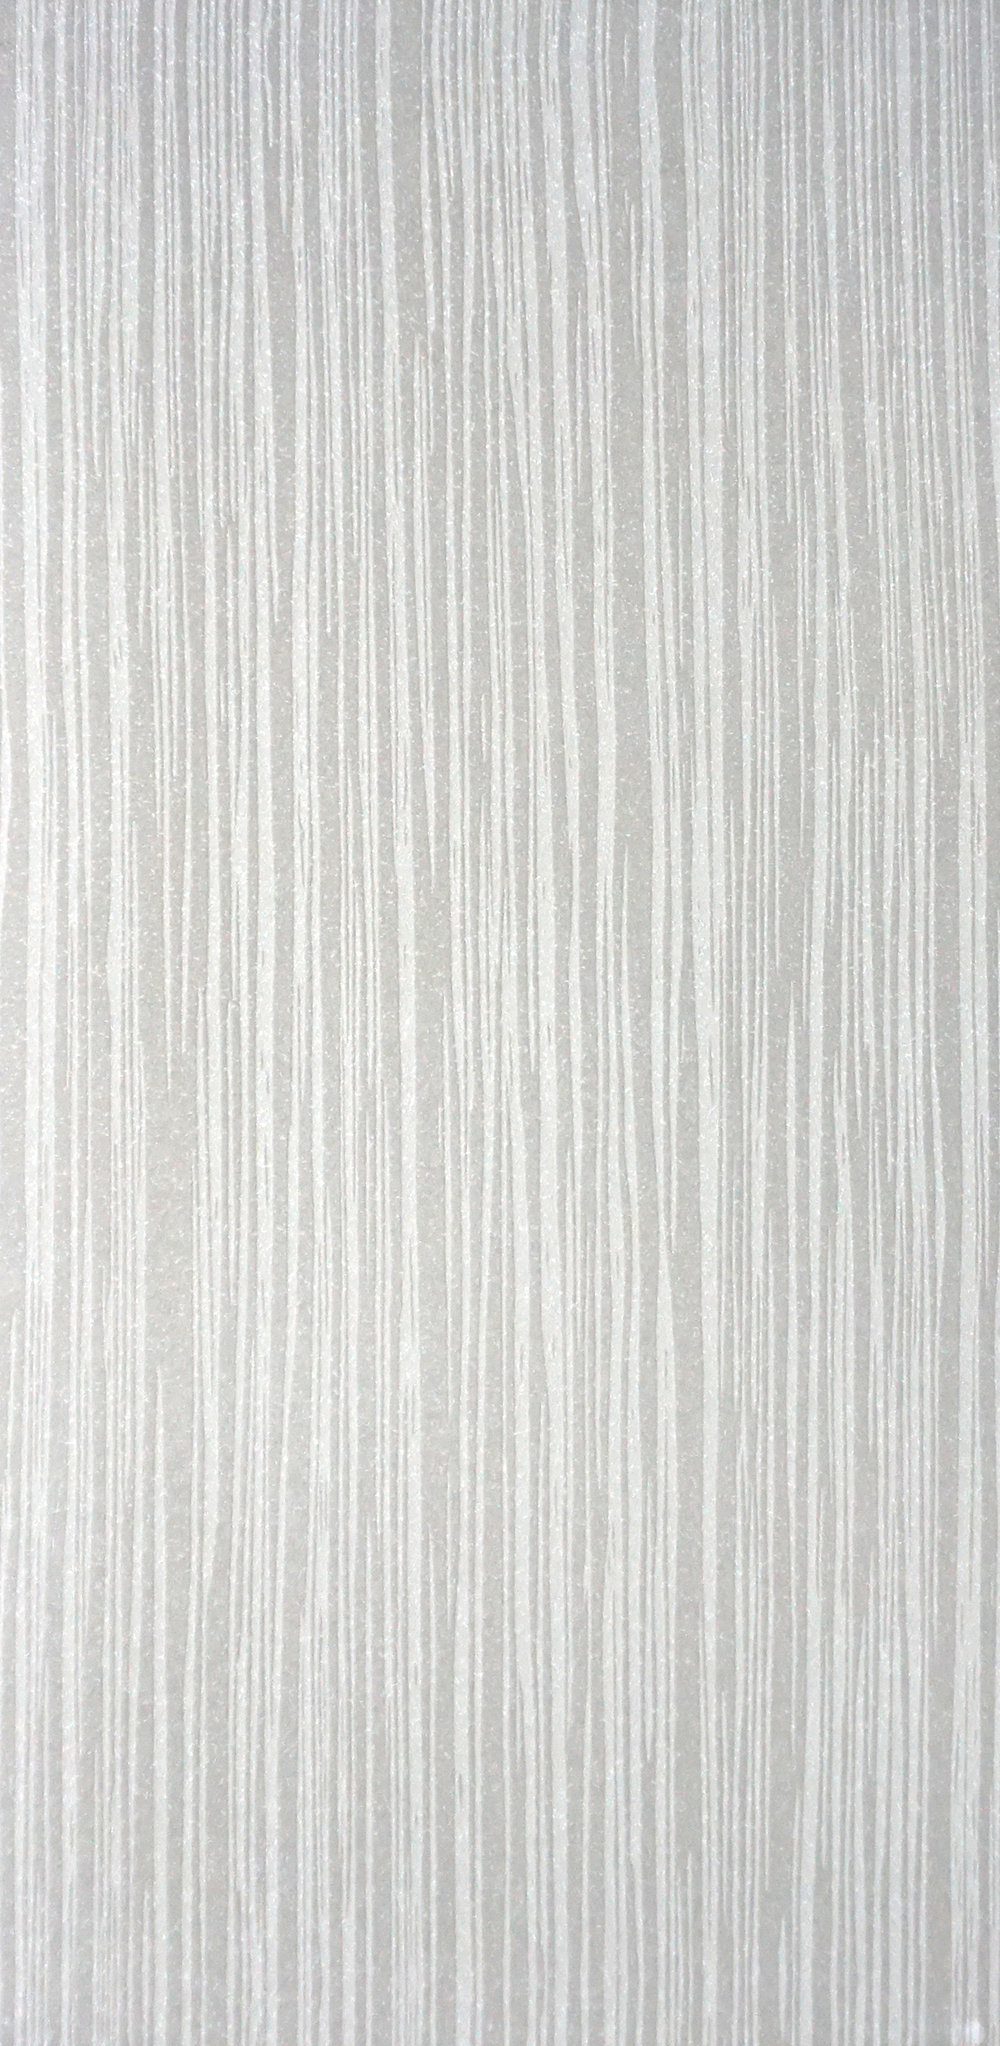 "CASCADE GREY 12""X24"" - GLAZED PORCELAIN 8 PC/CTN (15.5 SF); 40 CTN/PLT"